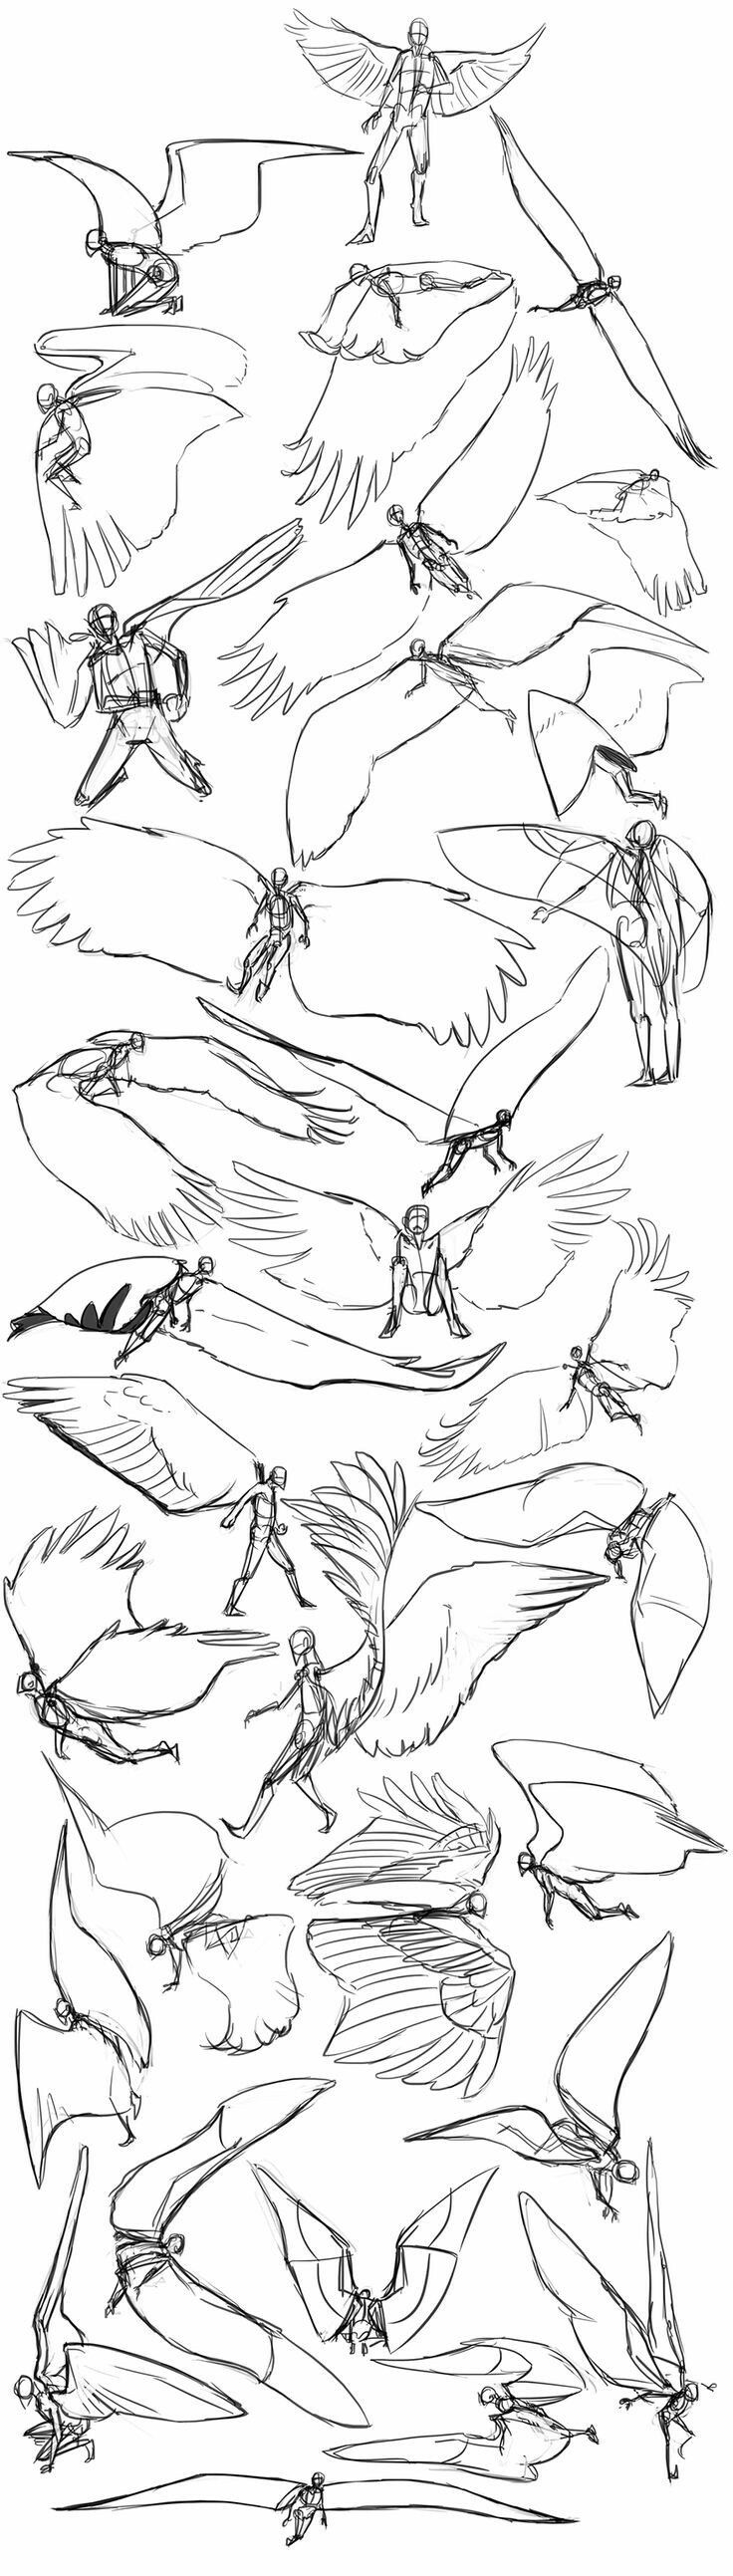 Wings, positions; How to Draw Manga/Anime